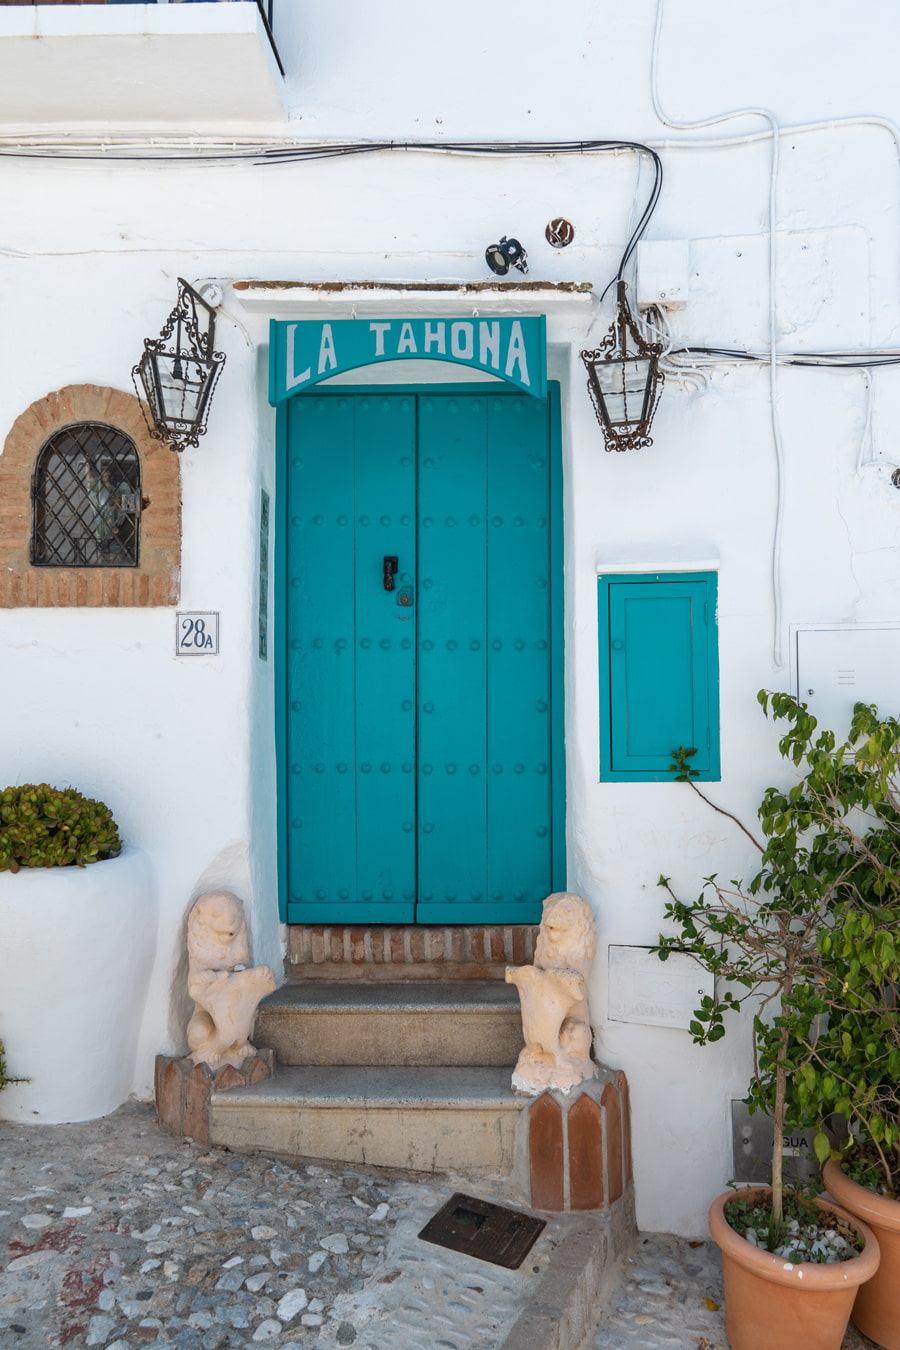 Shop in Frigiliana